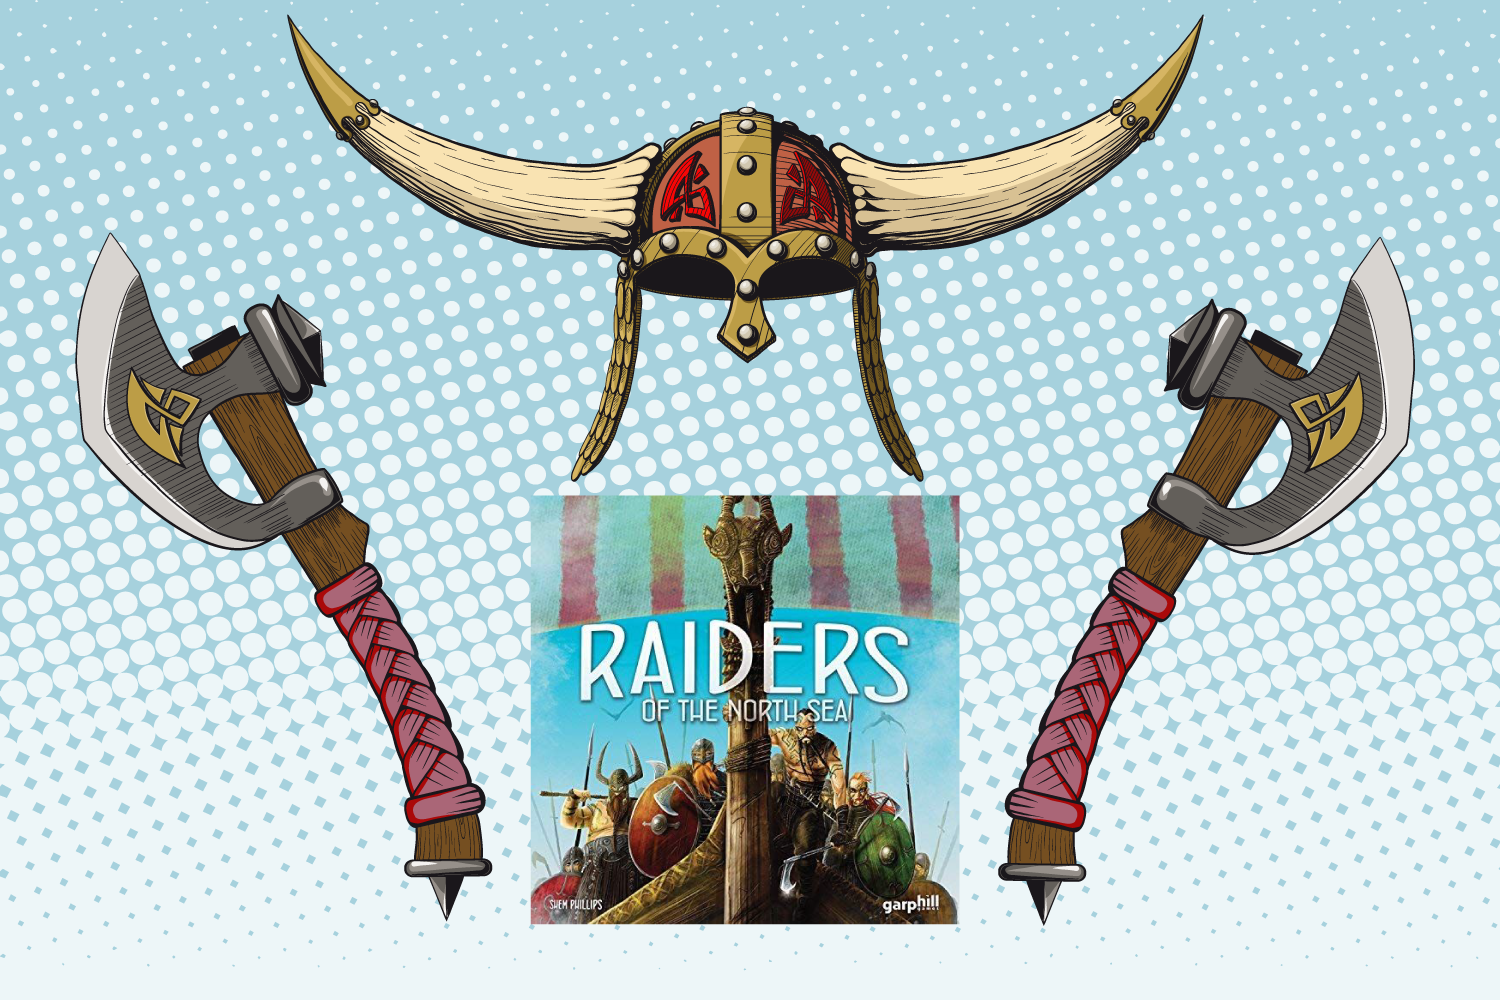 Raiders-of-the-North-Sea